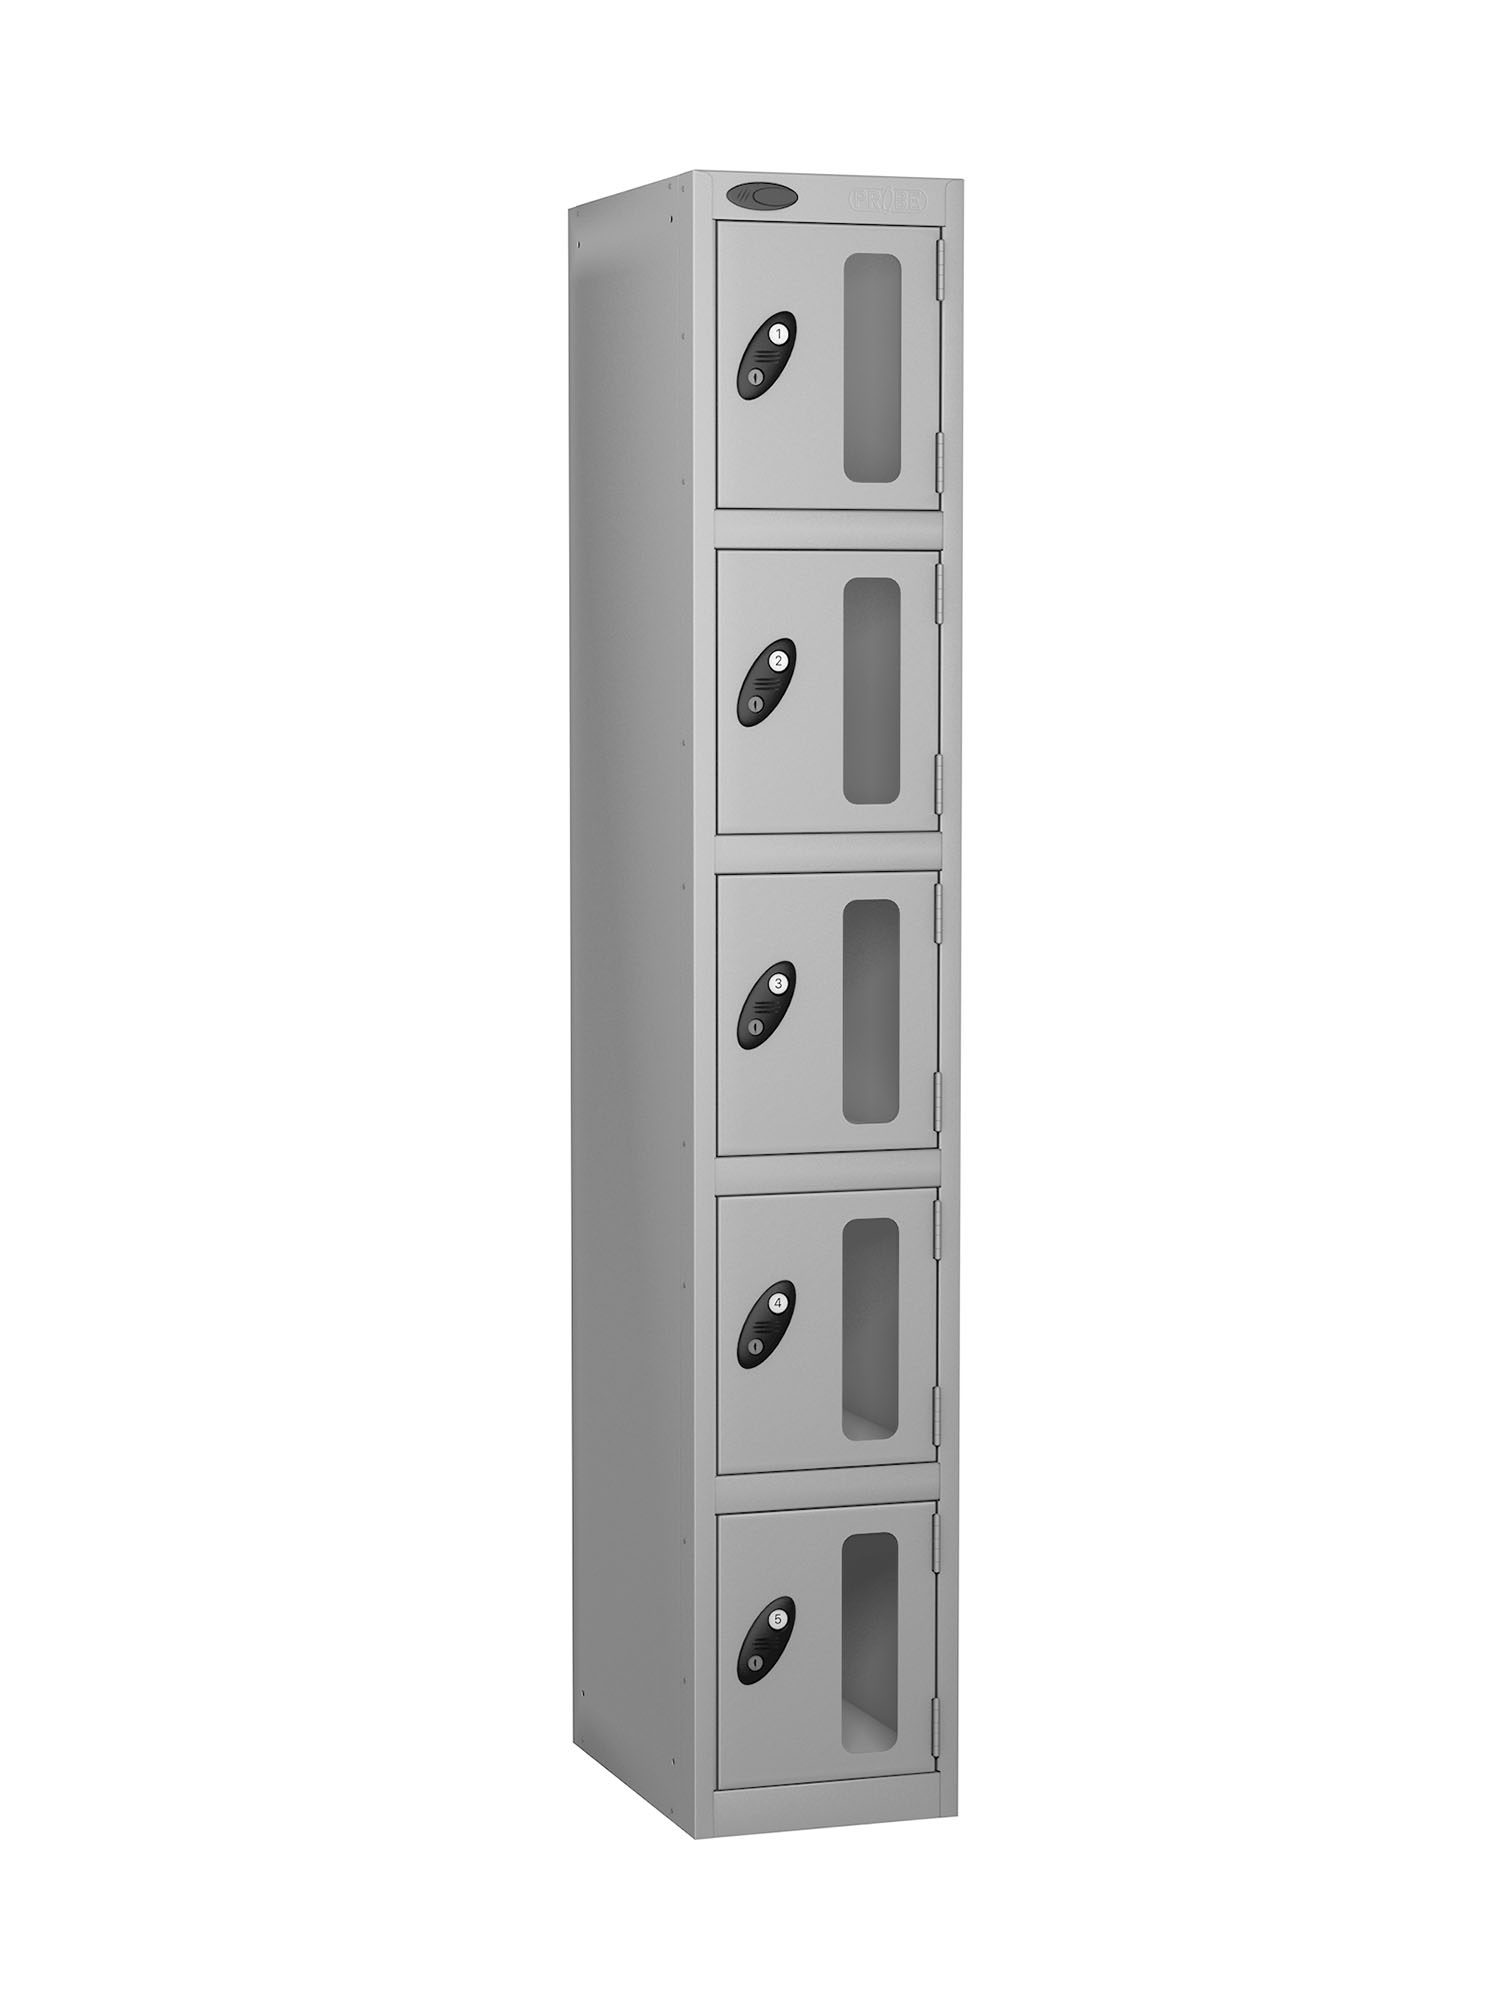 Probe 5 doors vision panel anti-stock theft locker silver